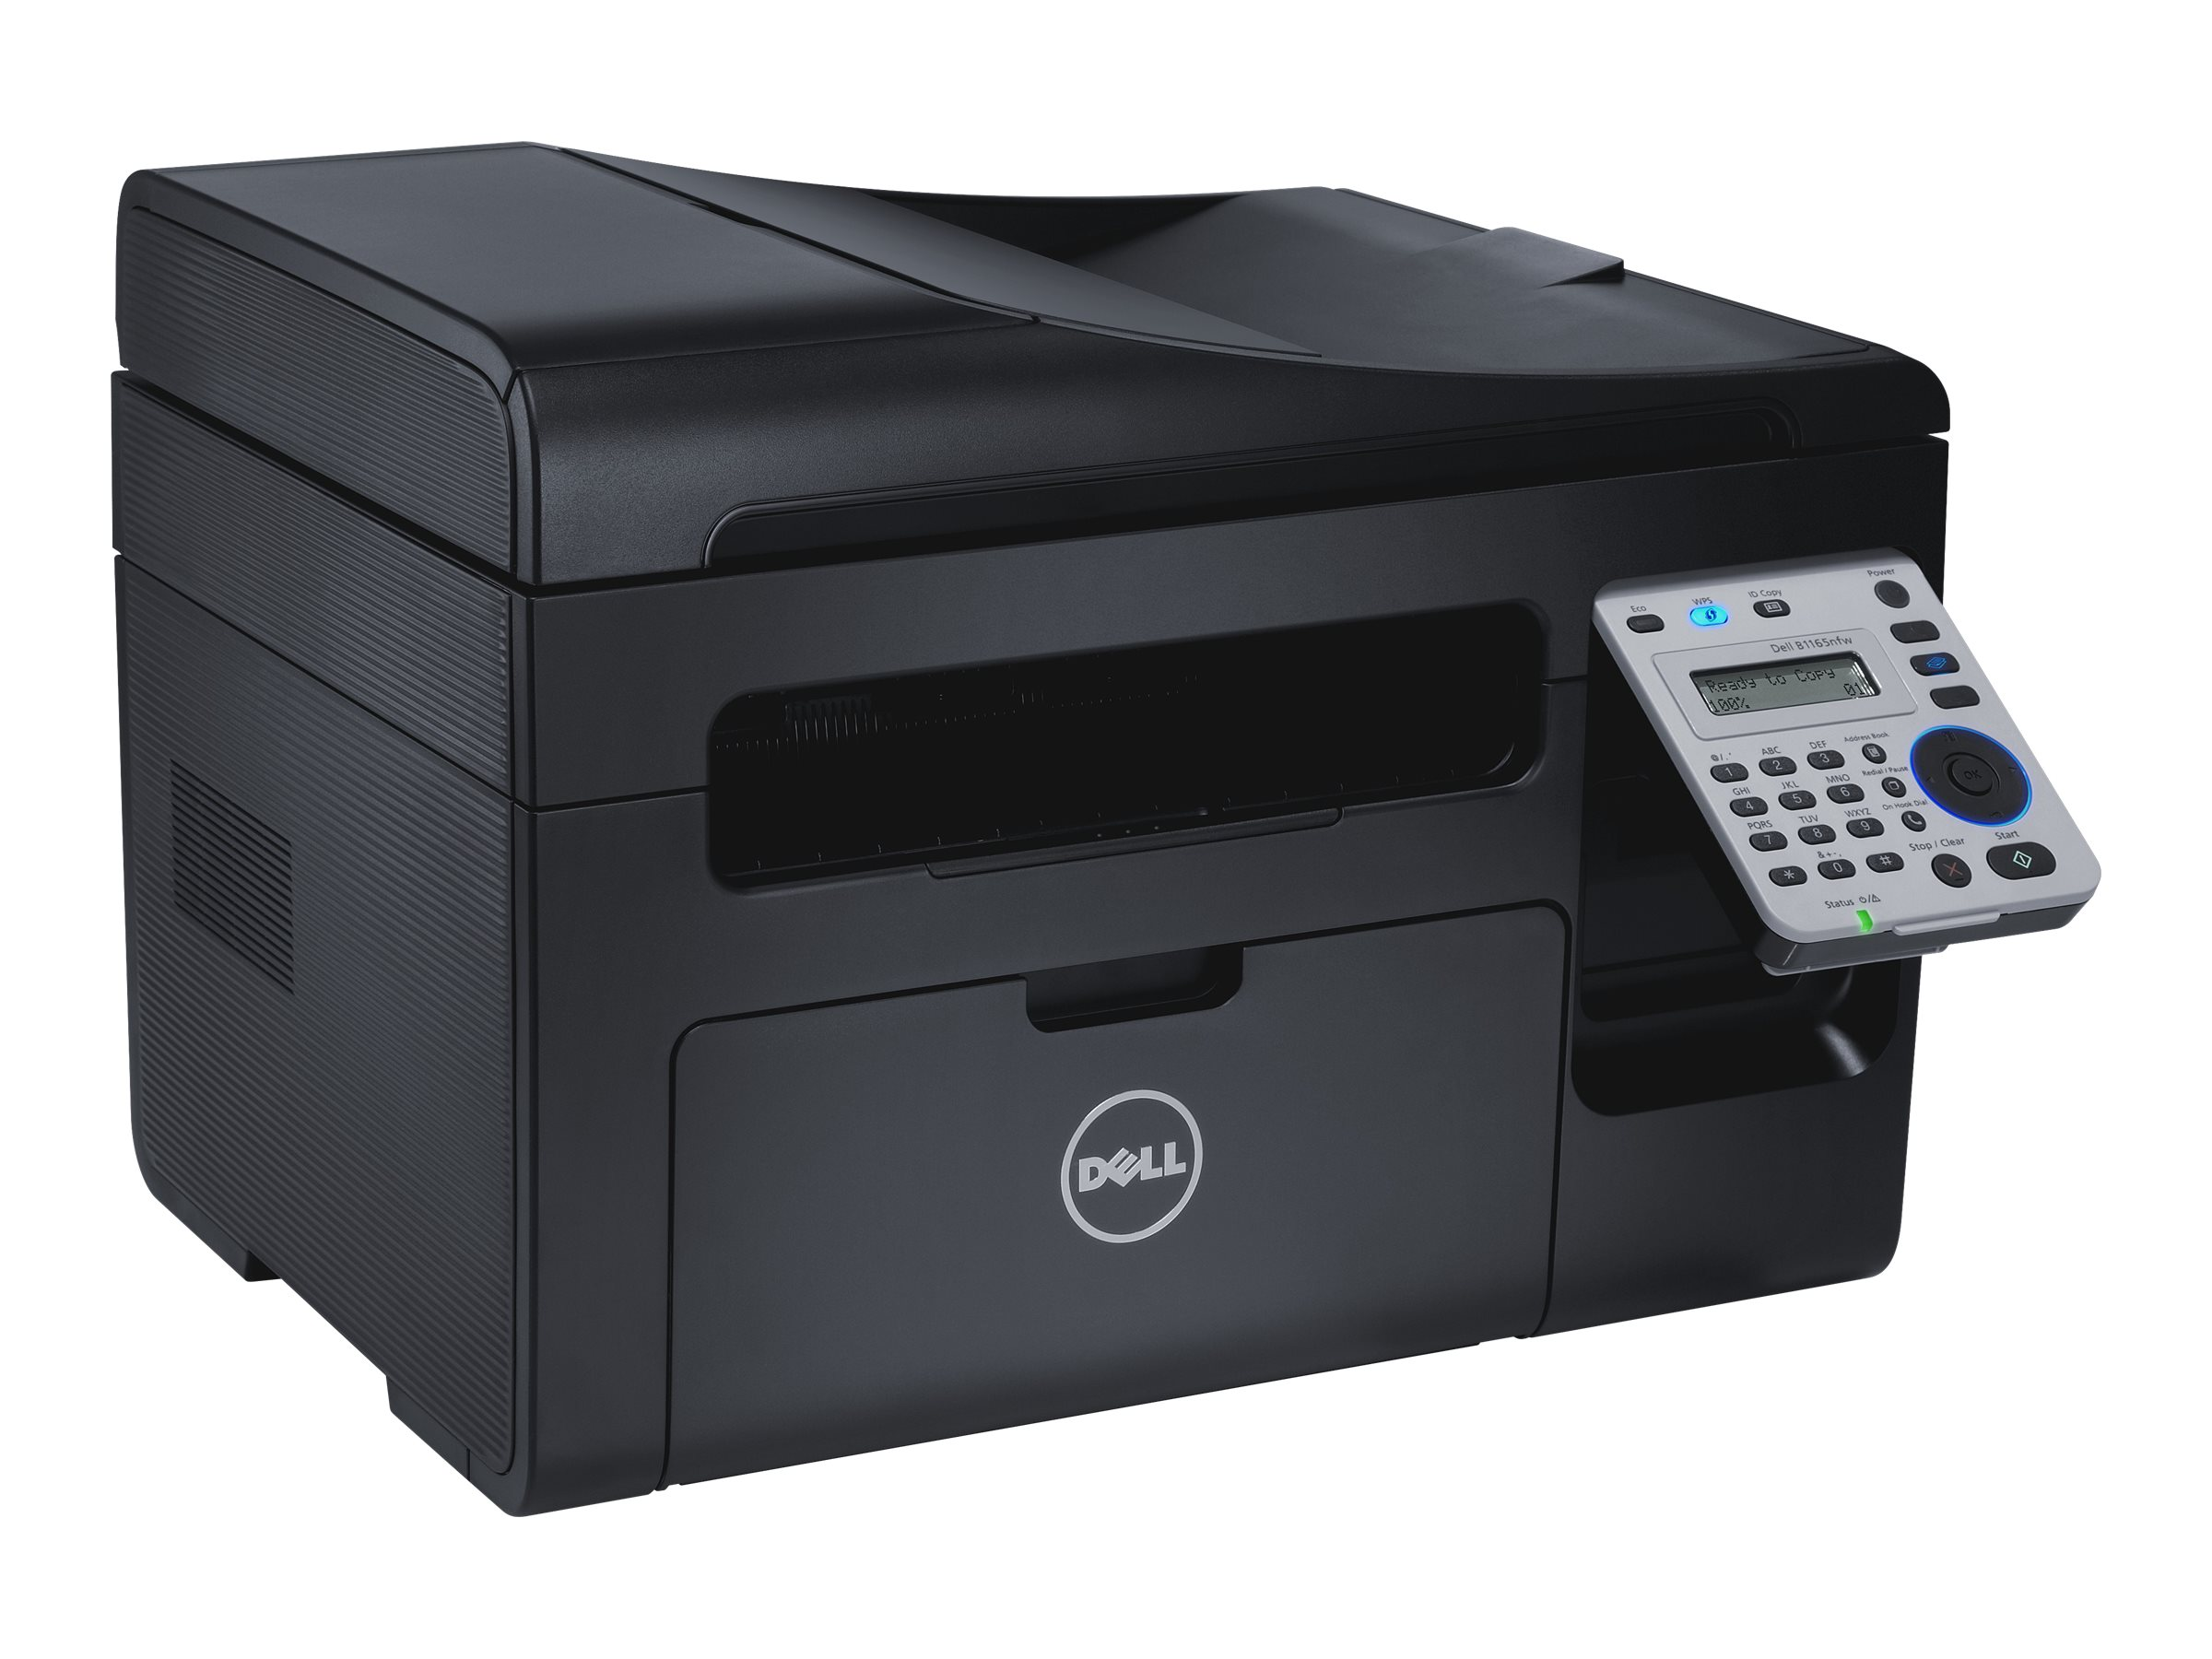 DELL B1165NFW PRINTER DRIVERS FOR WINDOWS 10